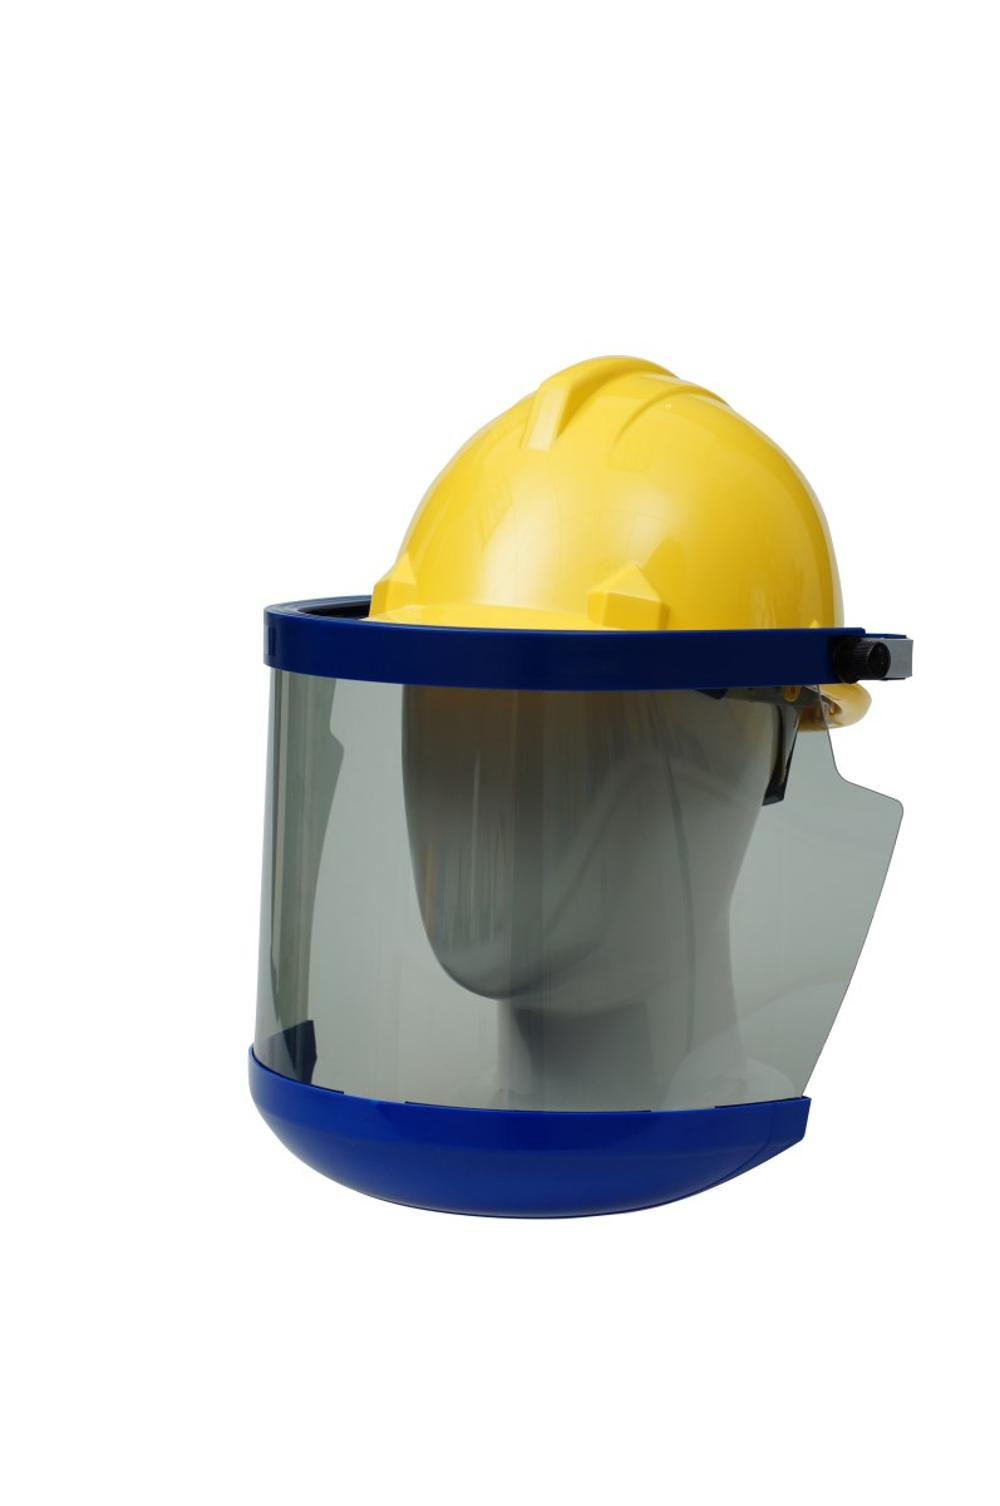 ASTM F2178 safety helmet arc flash protection pc visor with Chin protection -1